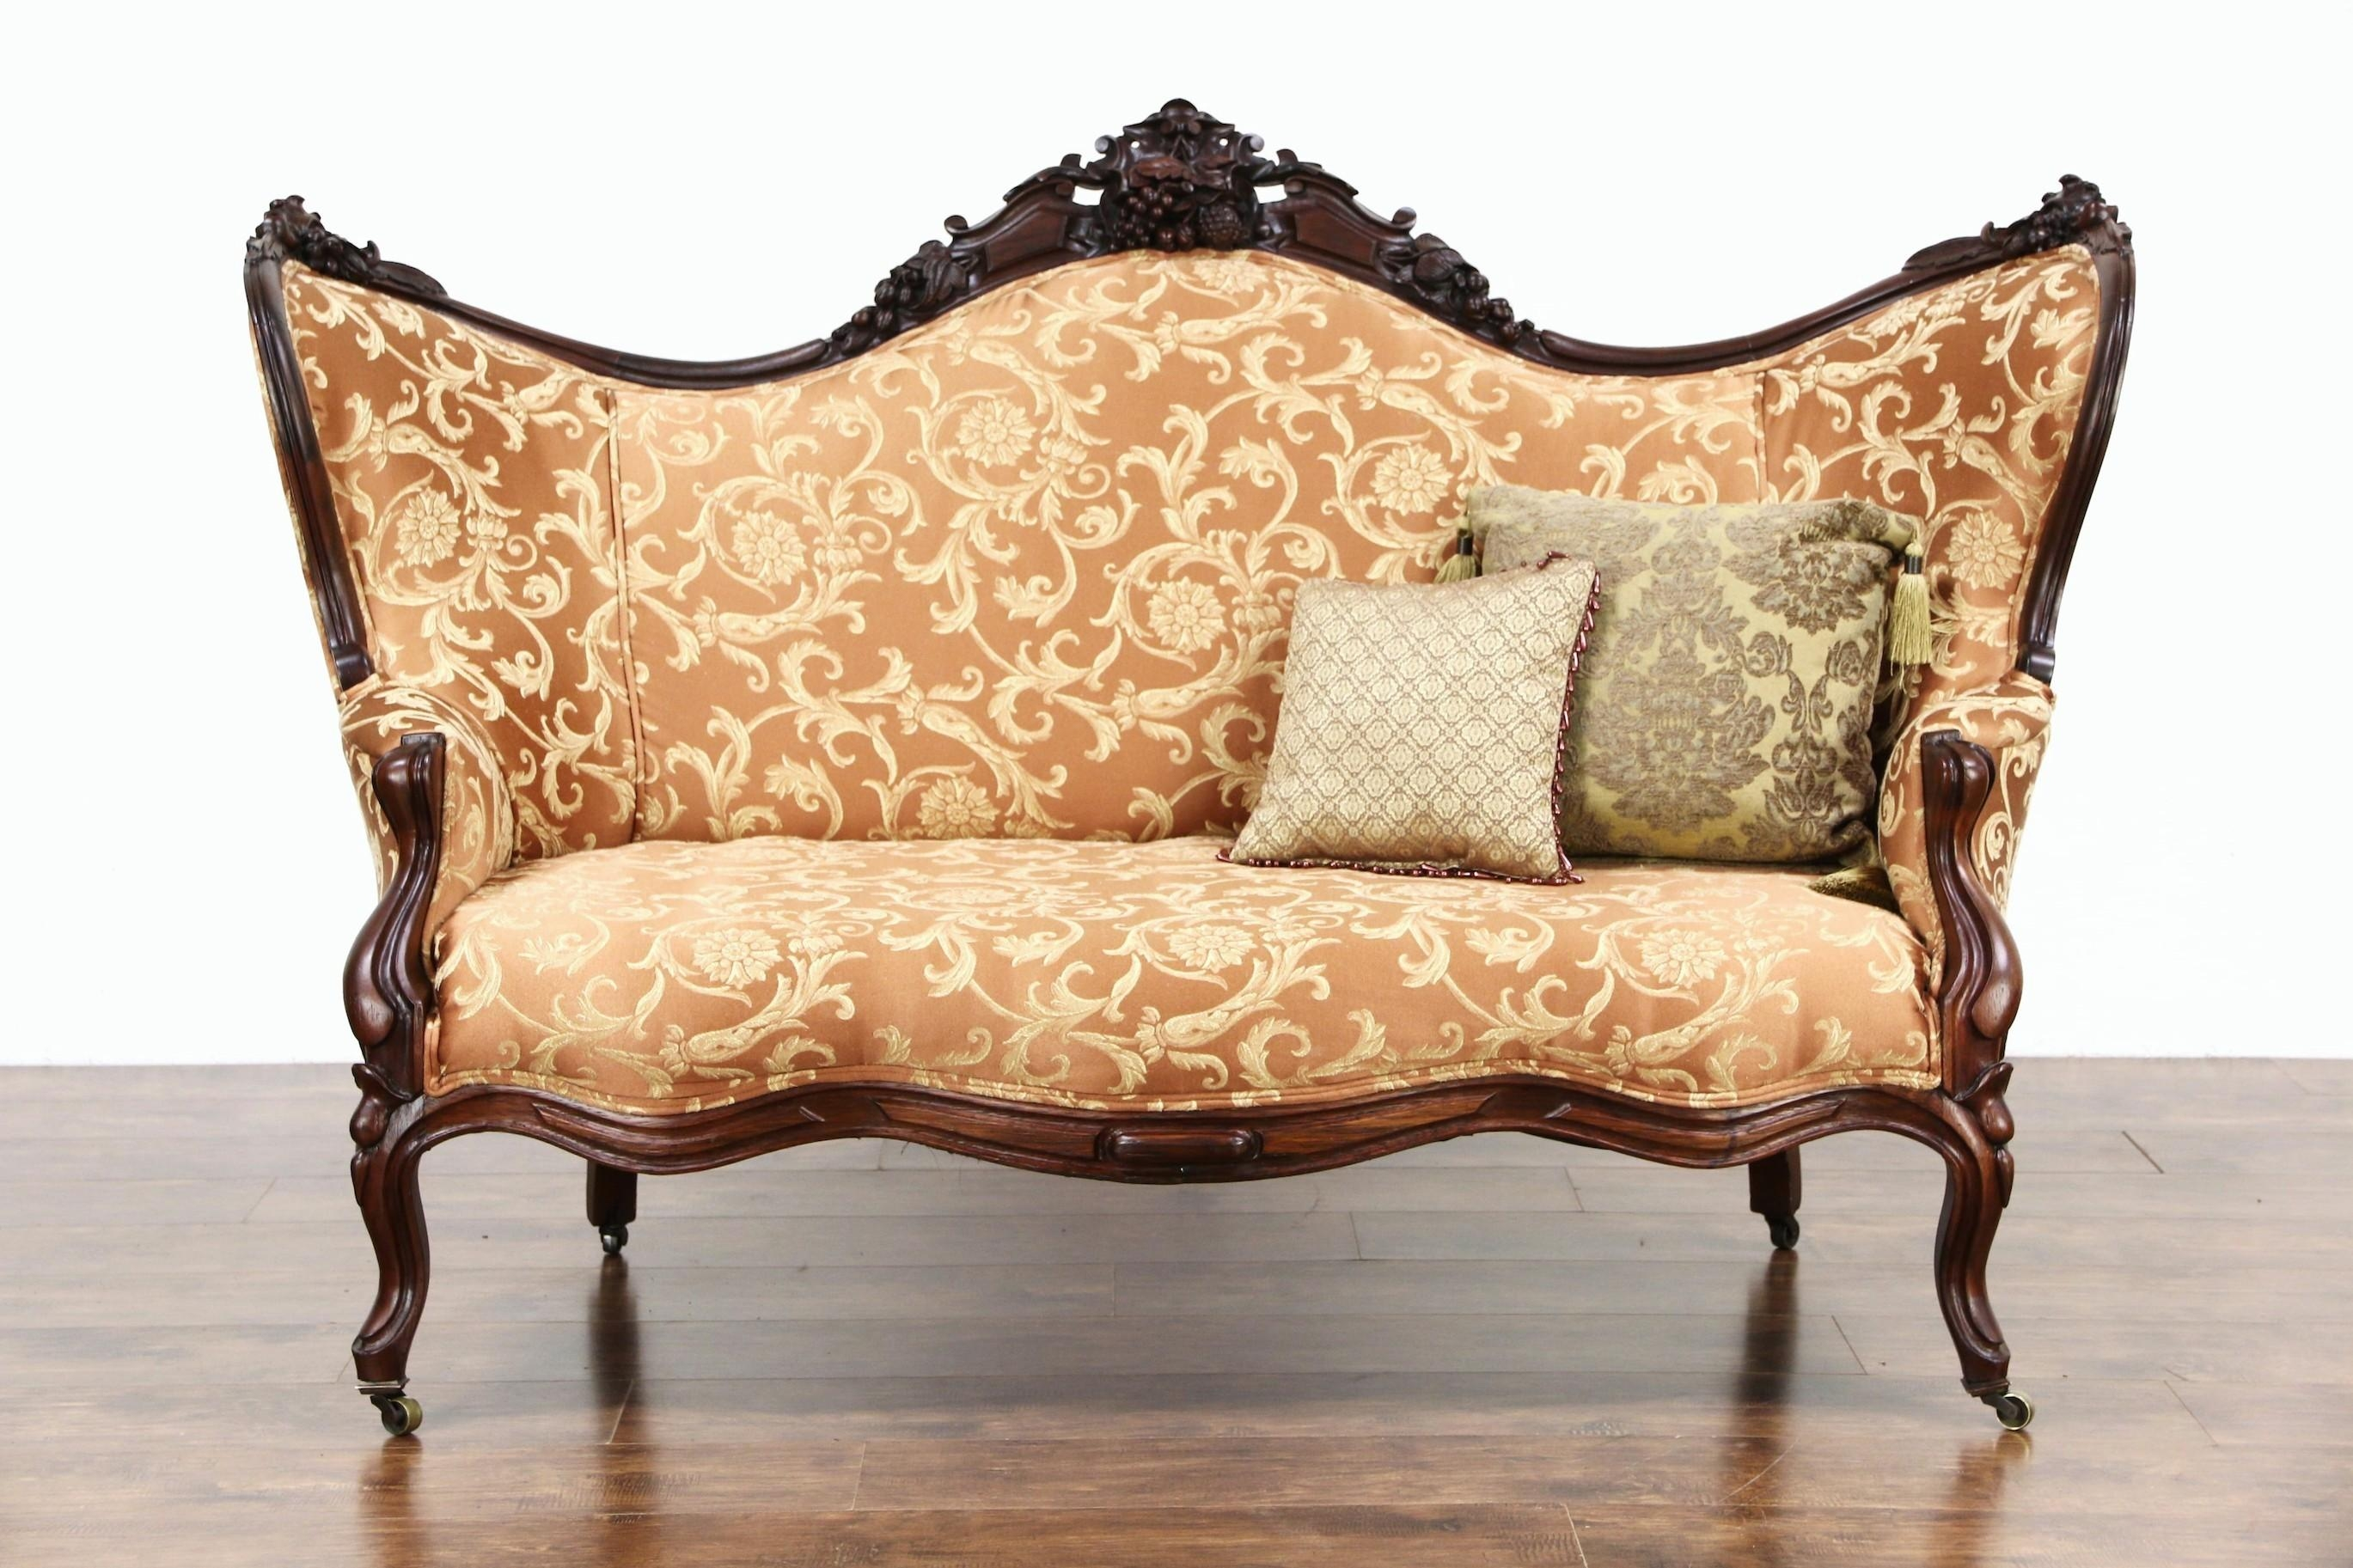 Sold – Victorian 1860 Antique Carved Grape & Fruit Motif Rosewood Regarding Antique Sofa Chairs (Image 17 of 20)